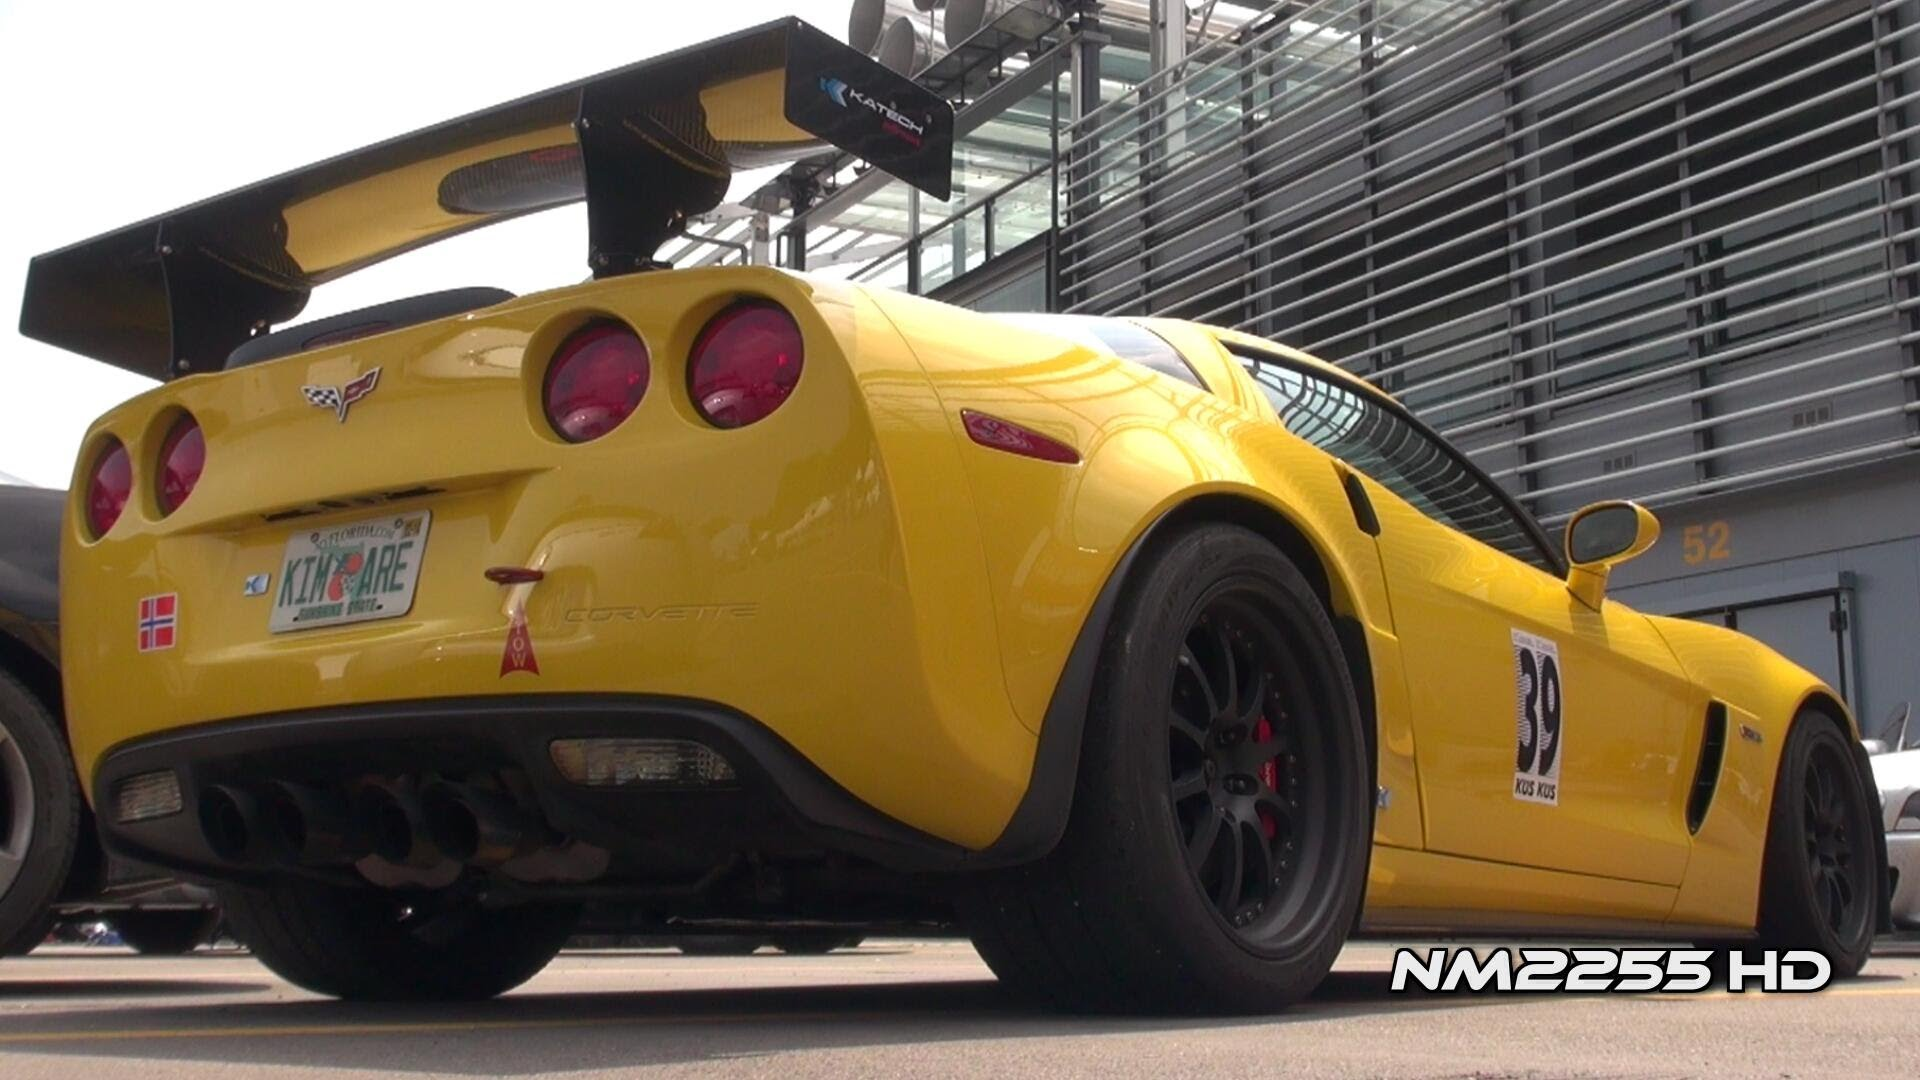 Modified Corvette Z06 with Corsa Exhaust LOUD SOUND!